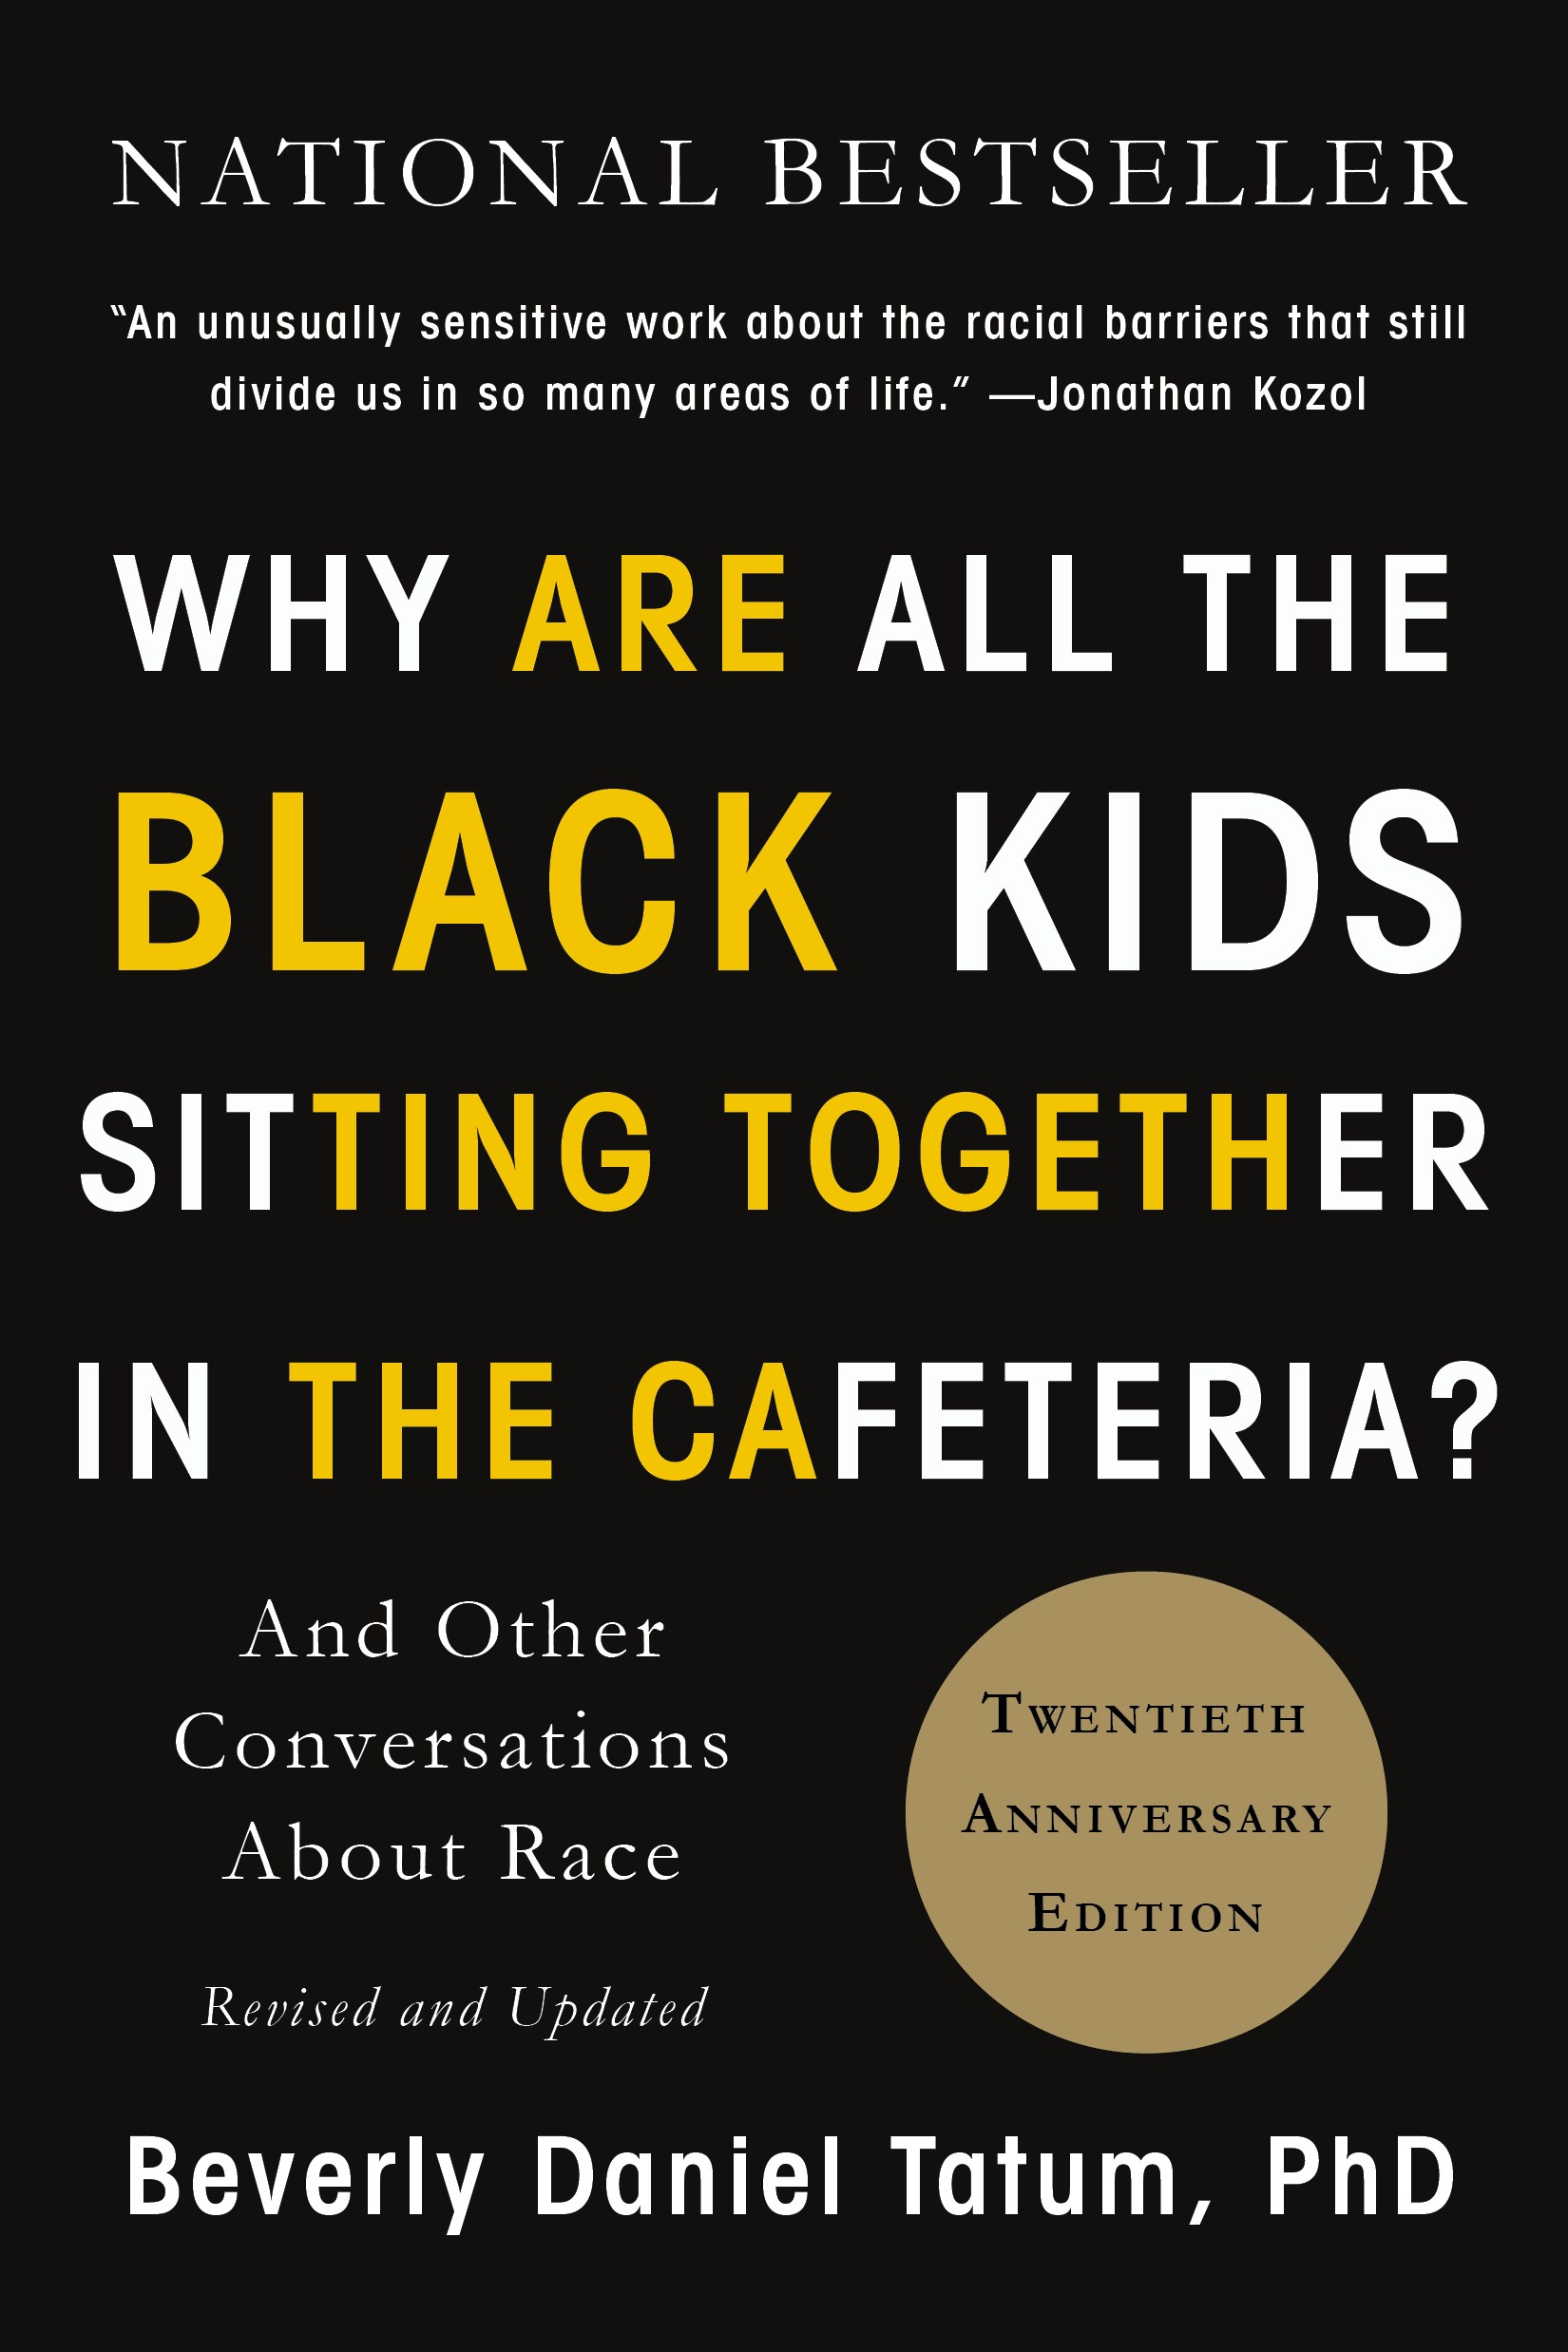 book jacket for Tatum's book - Why are all the black kids sitting together in the cafeteria?